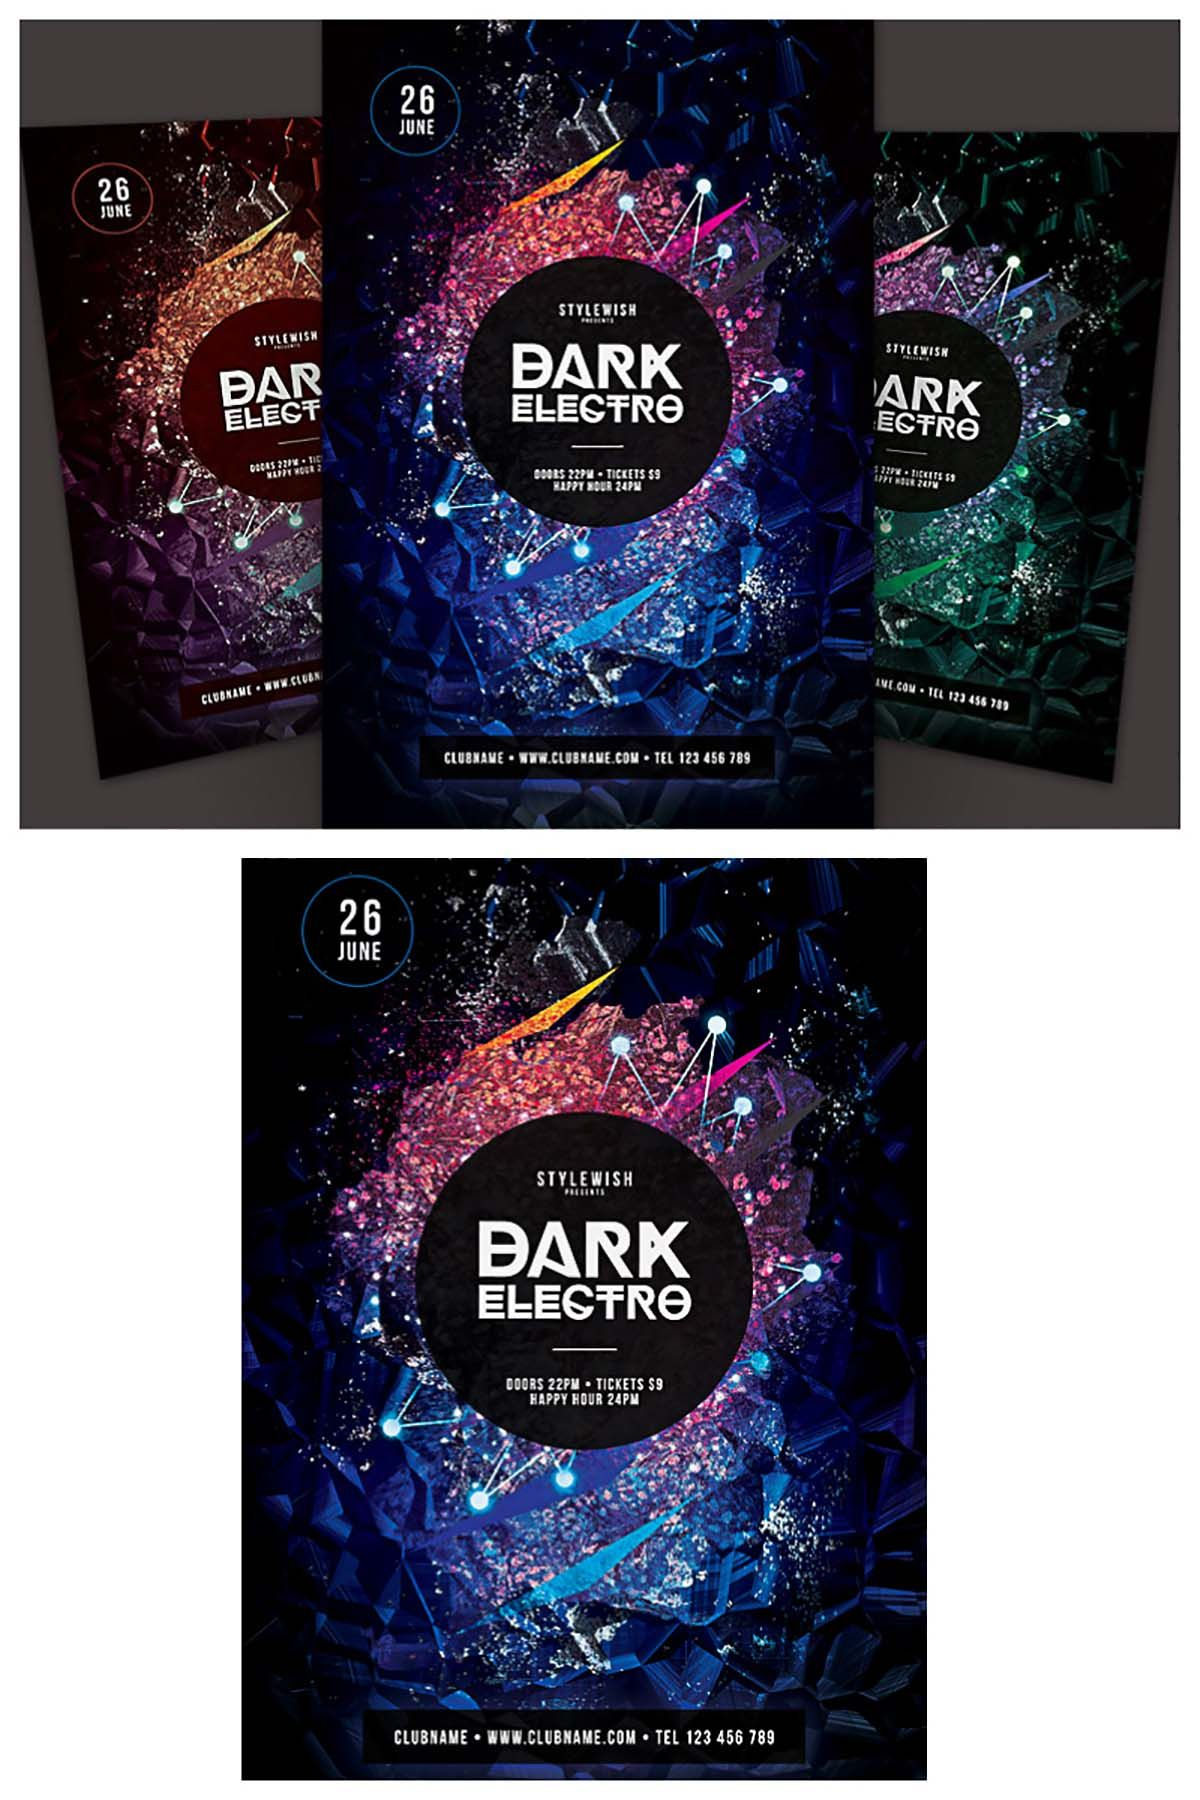 Poster design software free download - Dark Electro Party Poster Set